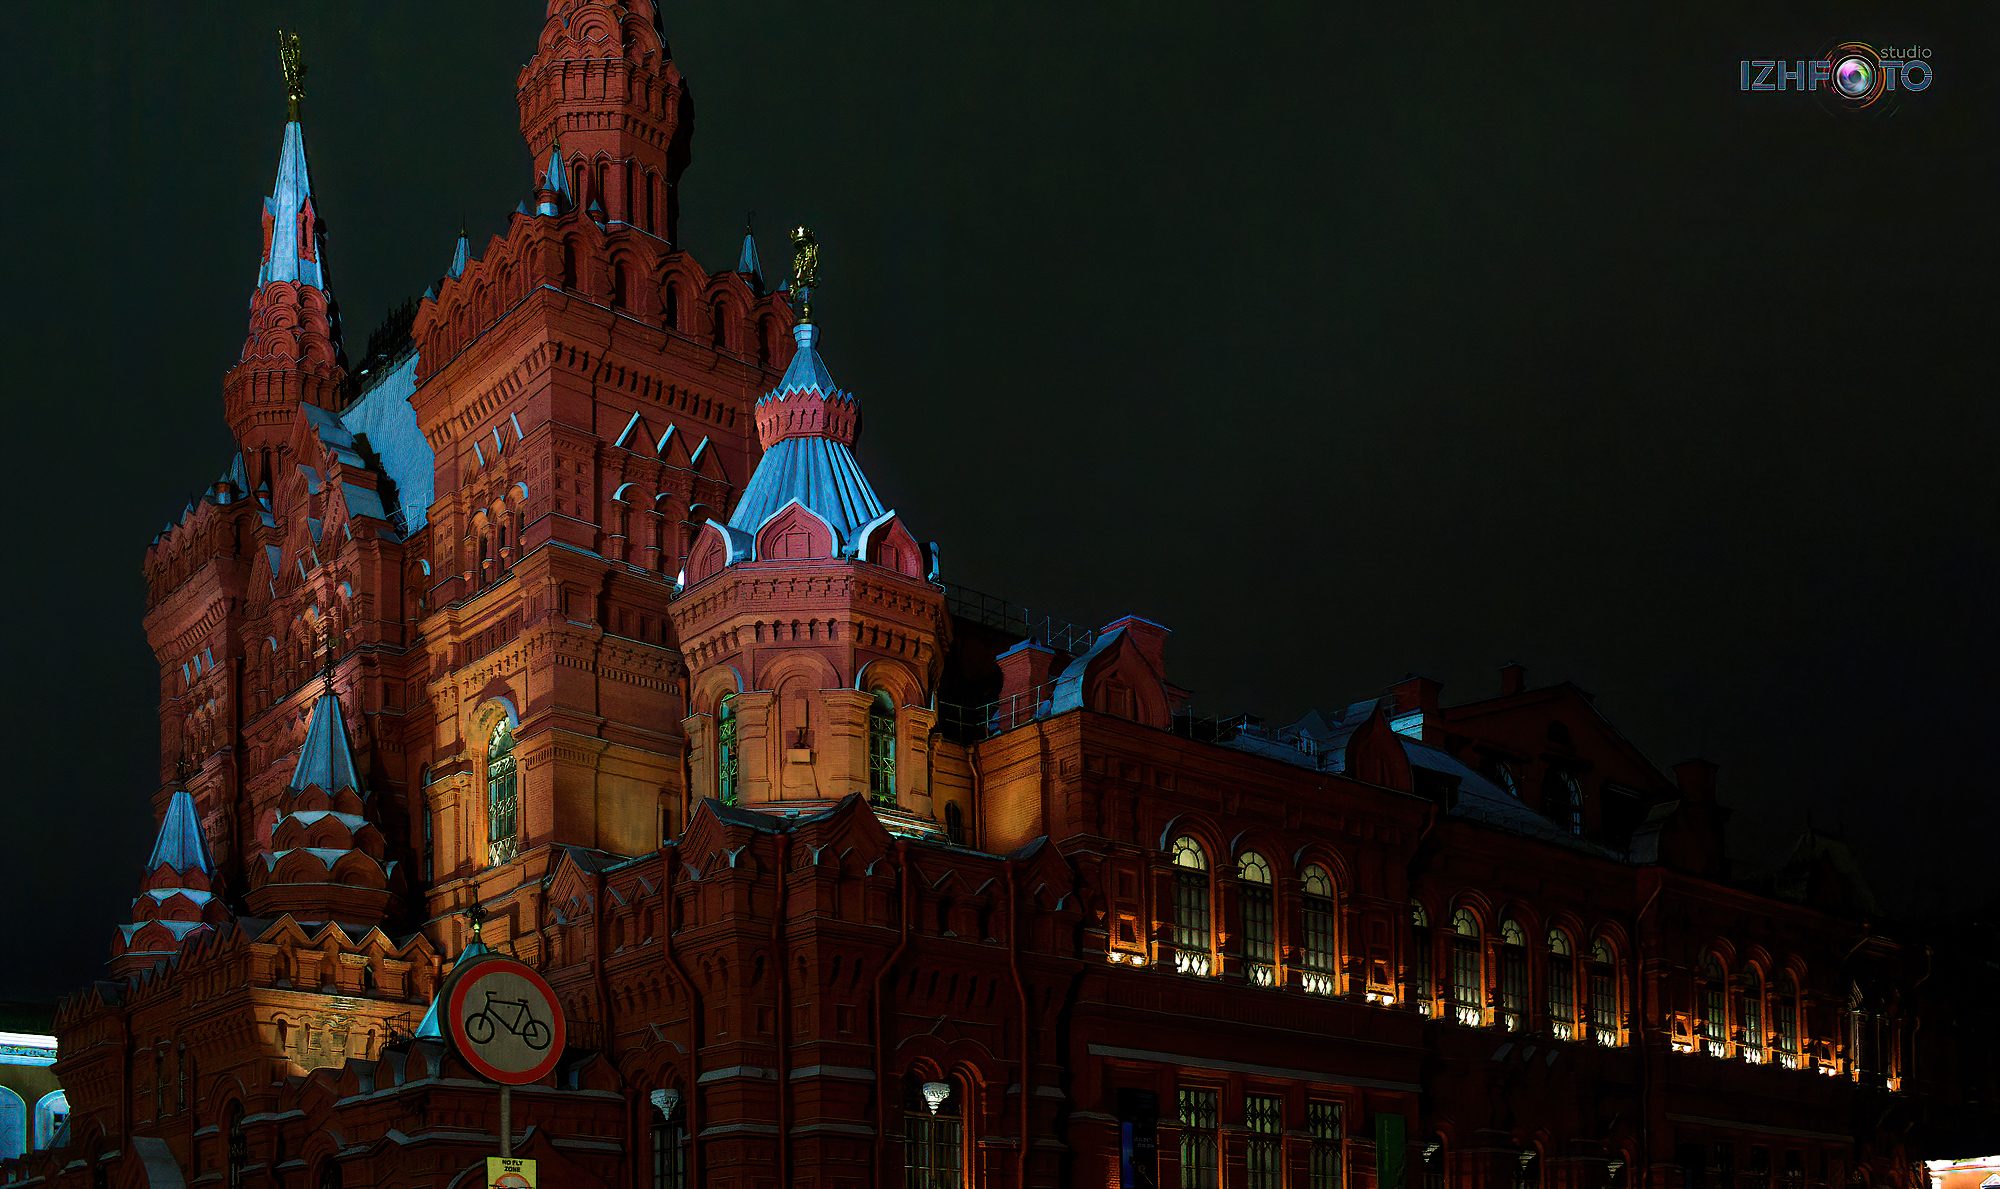 State Historical Museum pictured at night